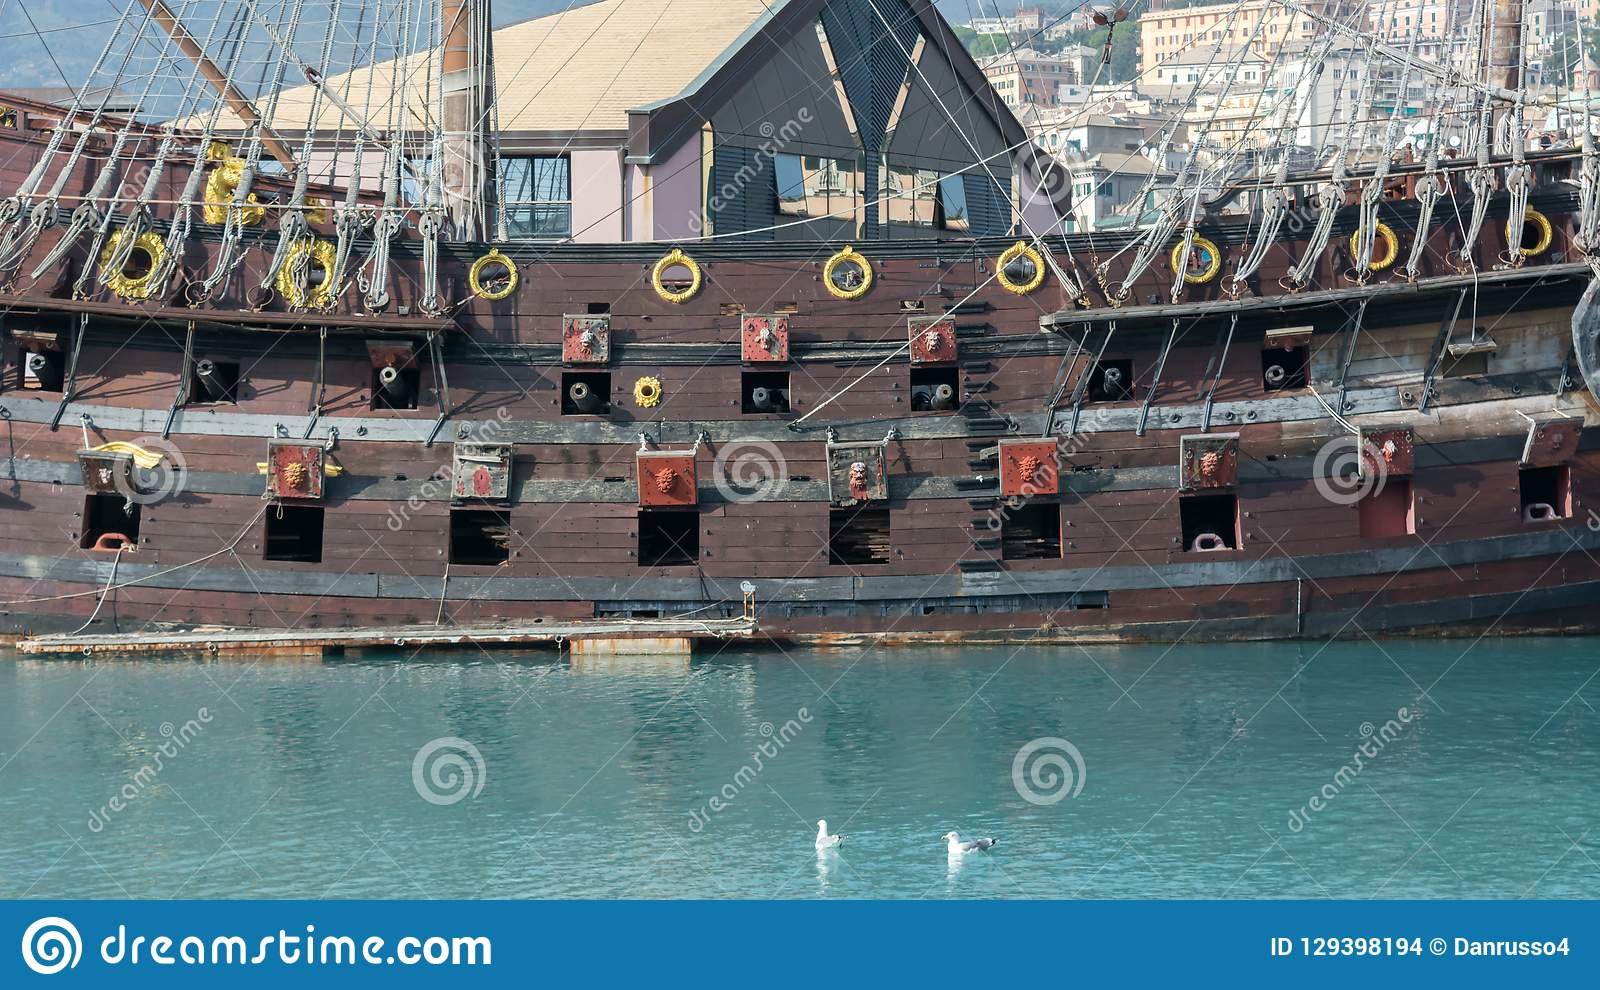 Horizontal View of the Starboard Side of an Ancient Pirate Galeon with the Hatches of the Cannons Open